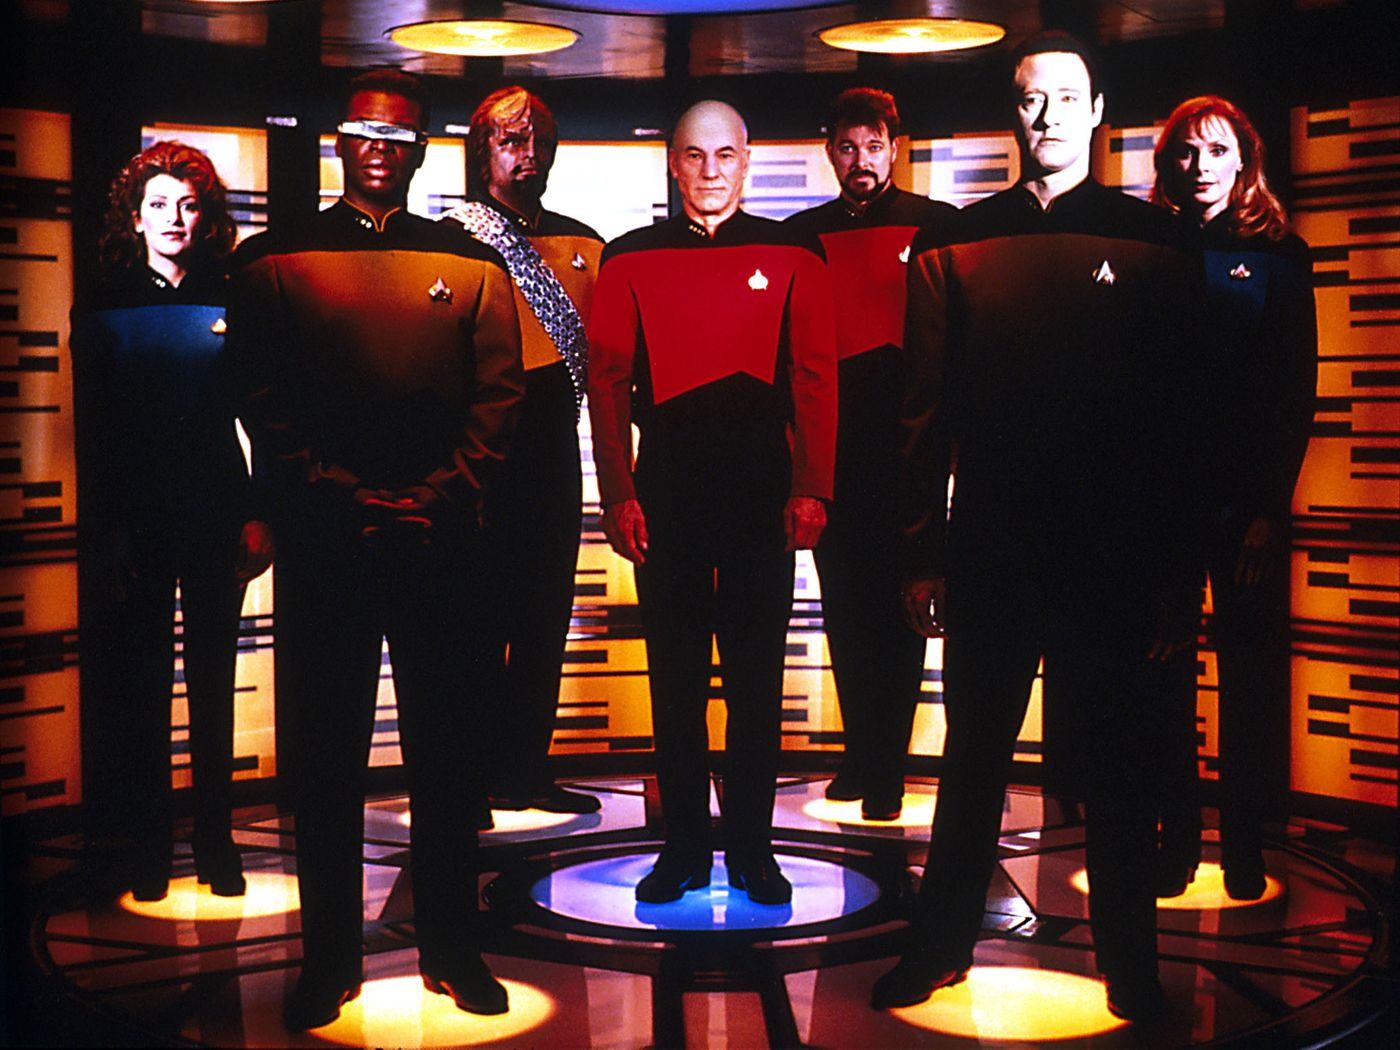 Star Trek The Next Generation Crew Wallpaper 1400x1050